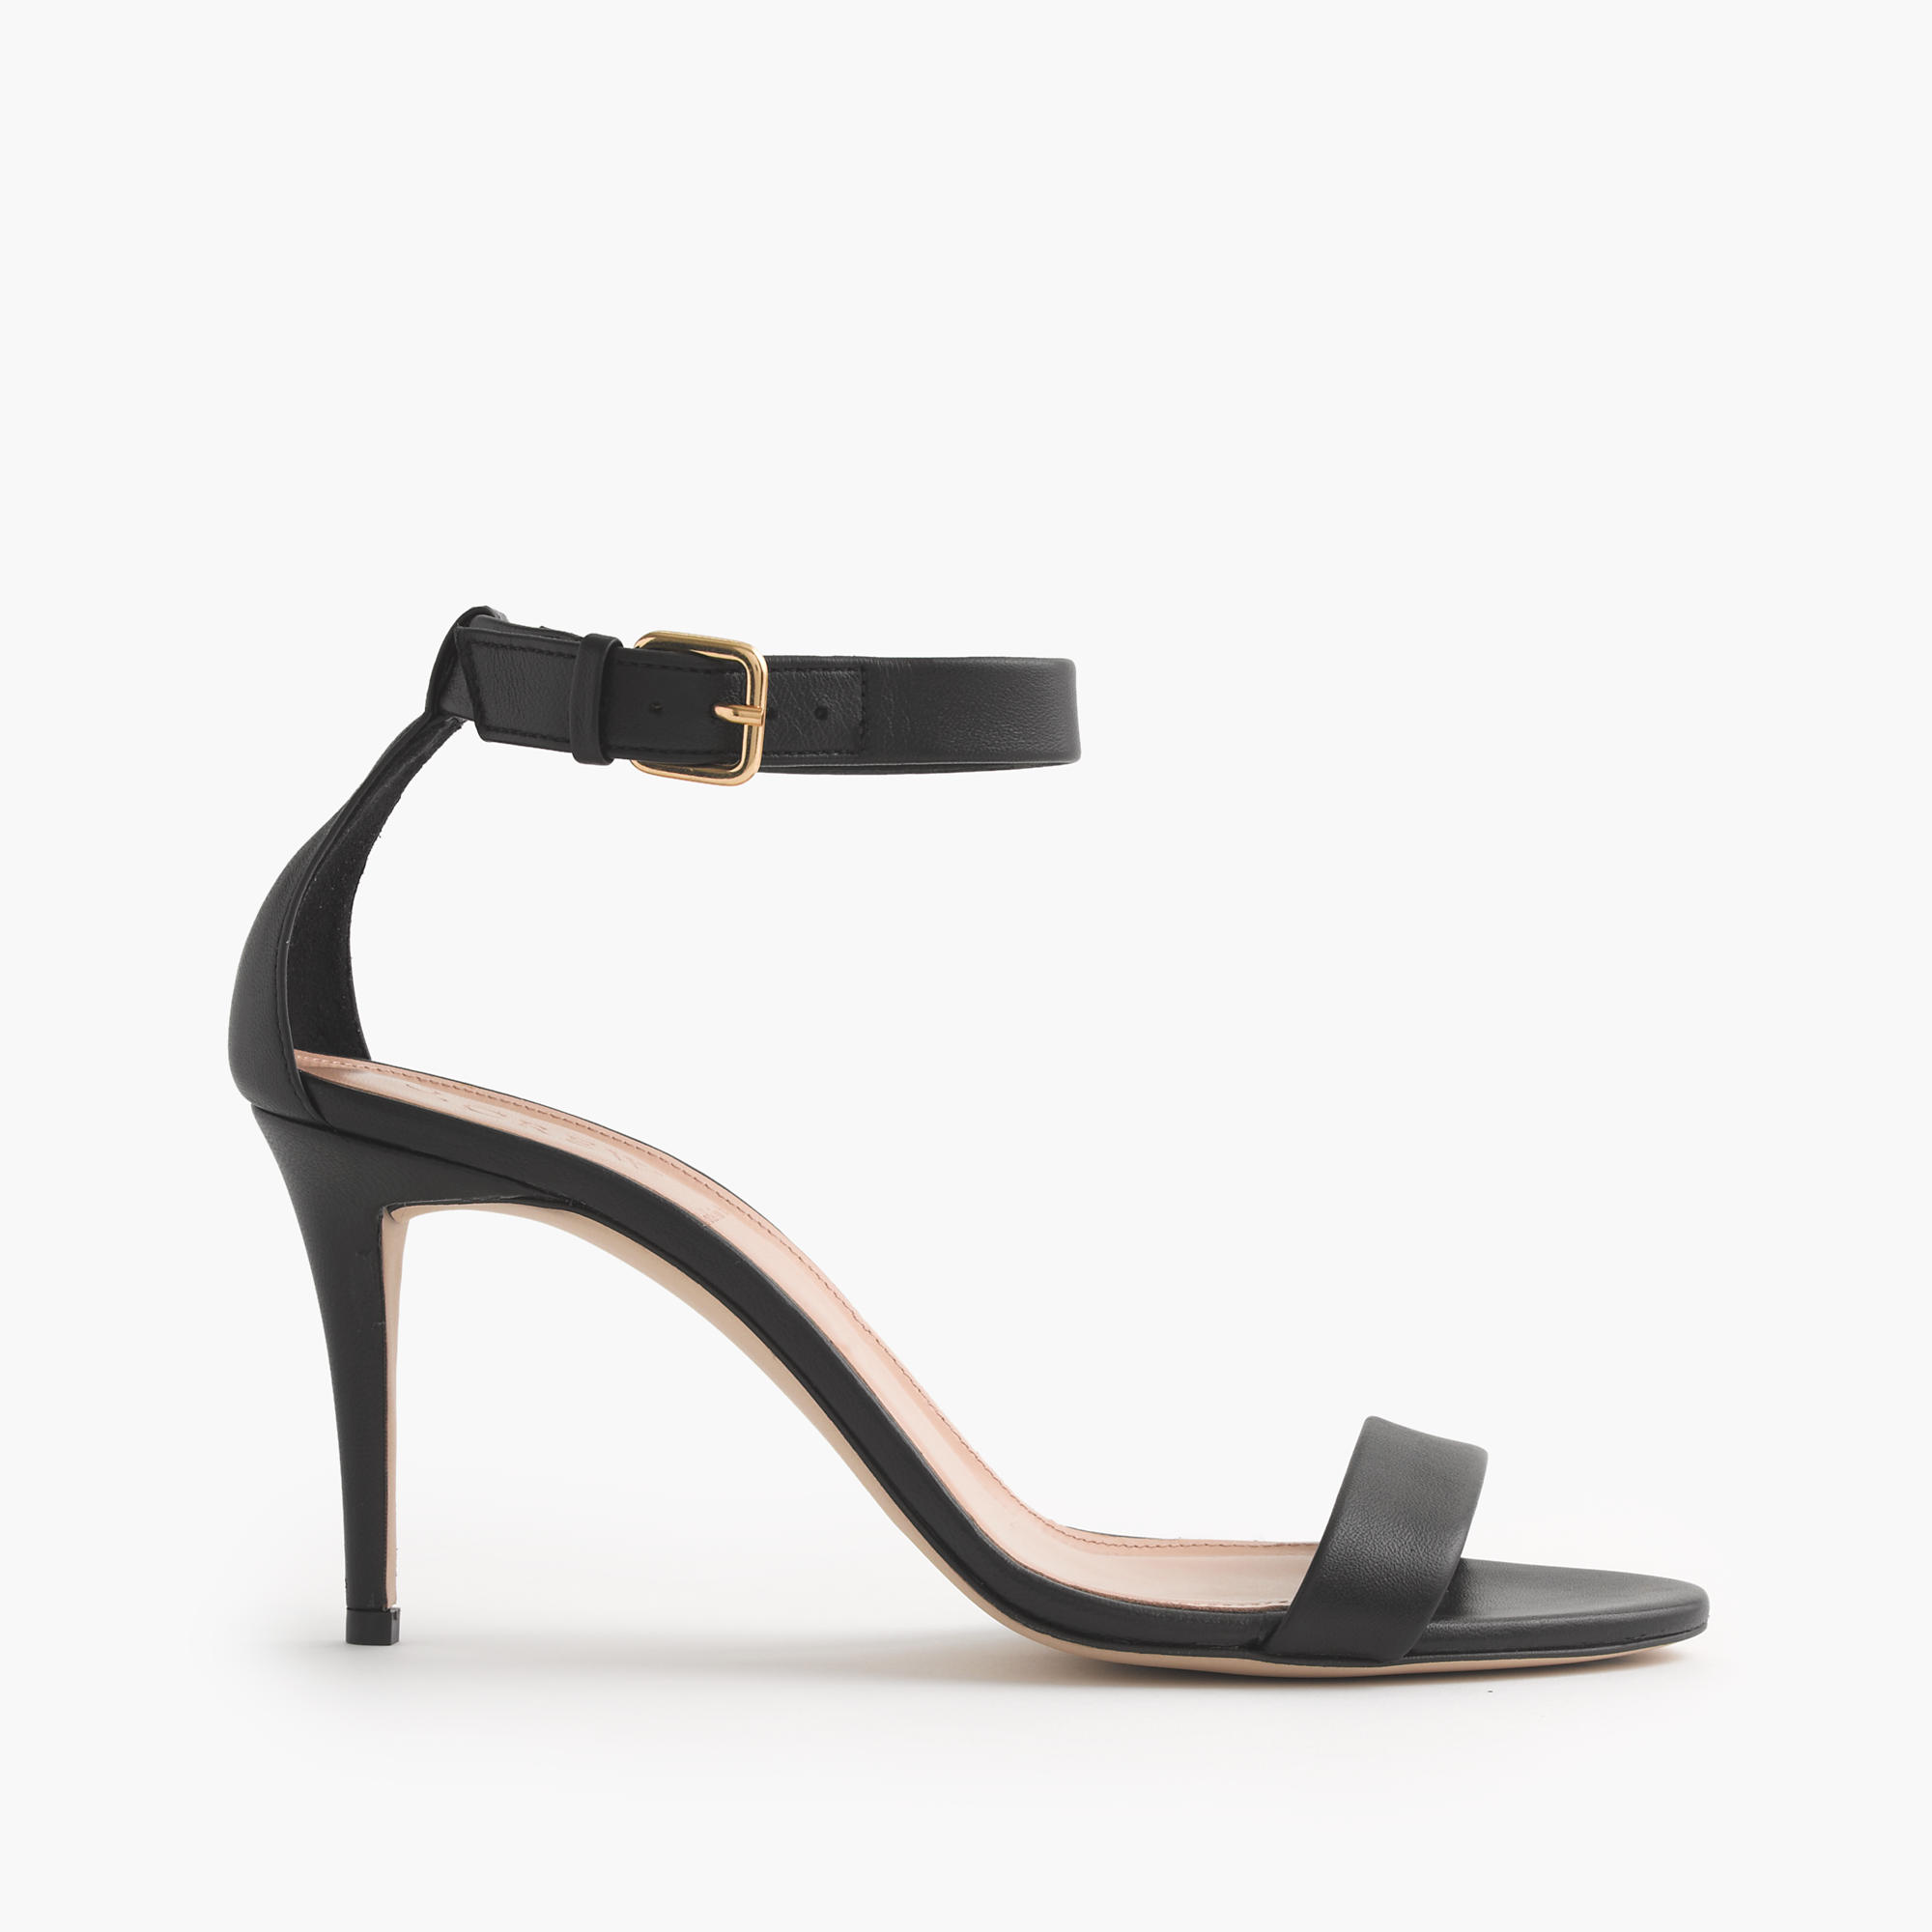 Shop for ankle straps for shoes online at Target. Free shipping on purchases over $35 and save 5% every day with your Target REDcard. skip to main content skip to footer. ankle strap sandals (36) ankle strap sandals. Ballet flats (2) .